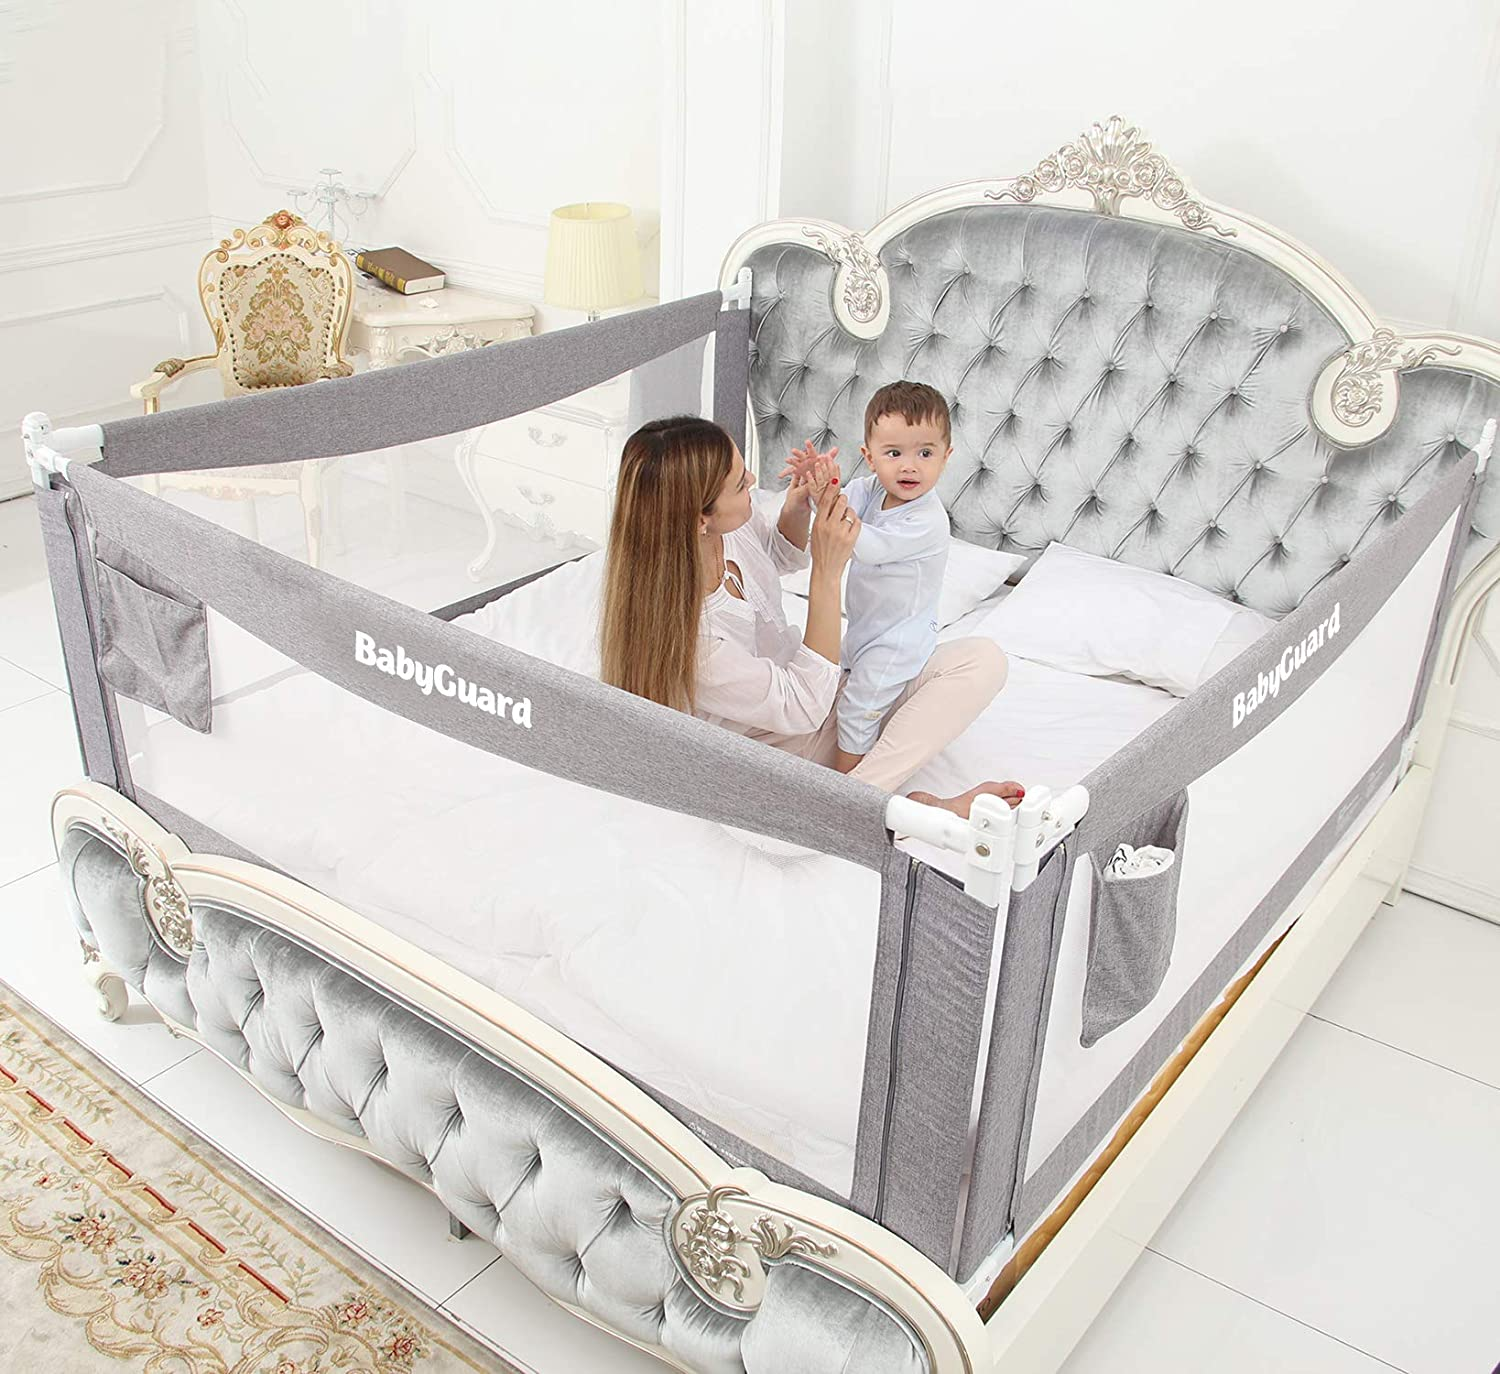 BabyGuard Bed Rails for Toddlers - Extra Long and Tall Specially Designed for Twin, Full, Queen, King & California King Bed Mattress (3 Sides, Perfect for California King Bed)